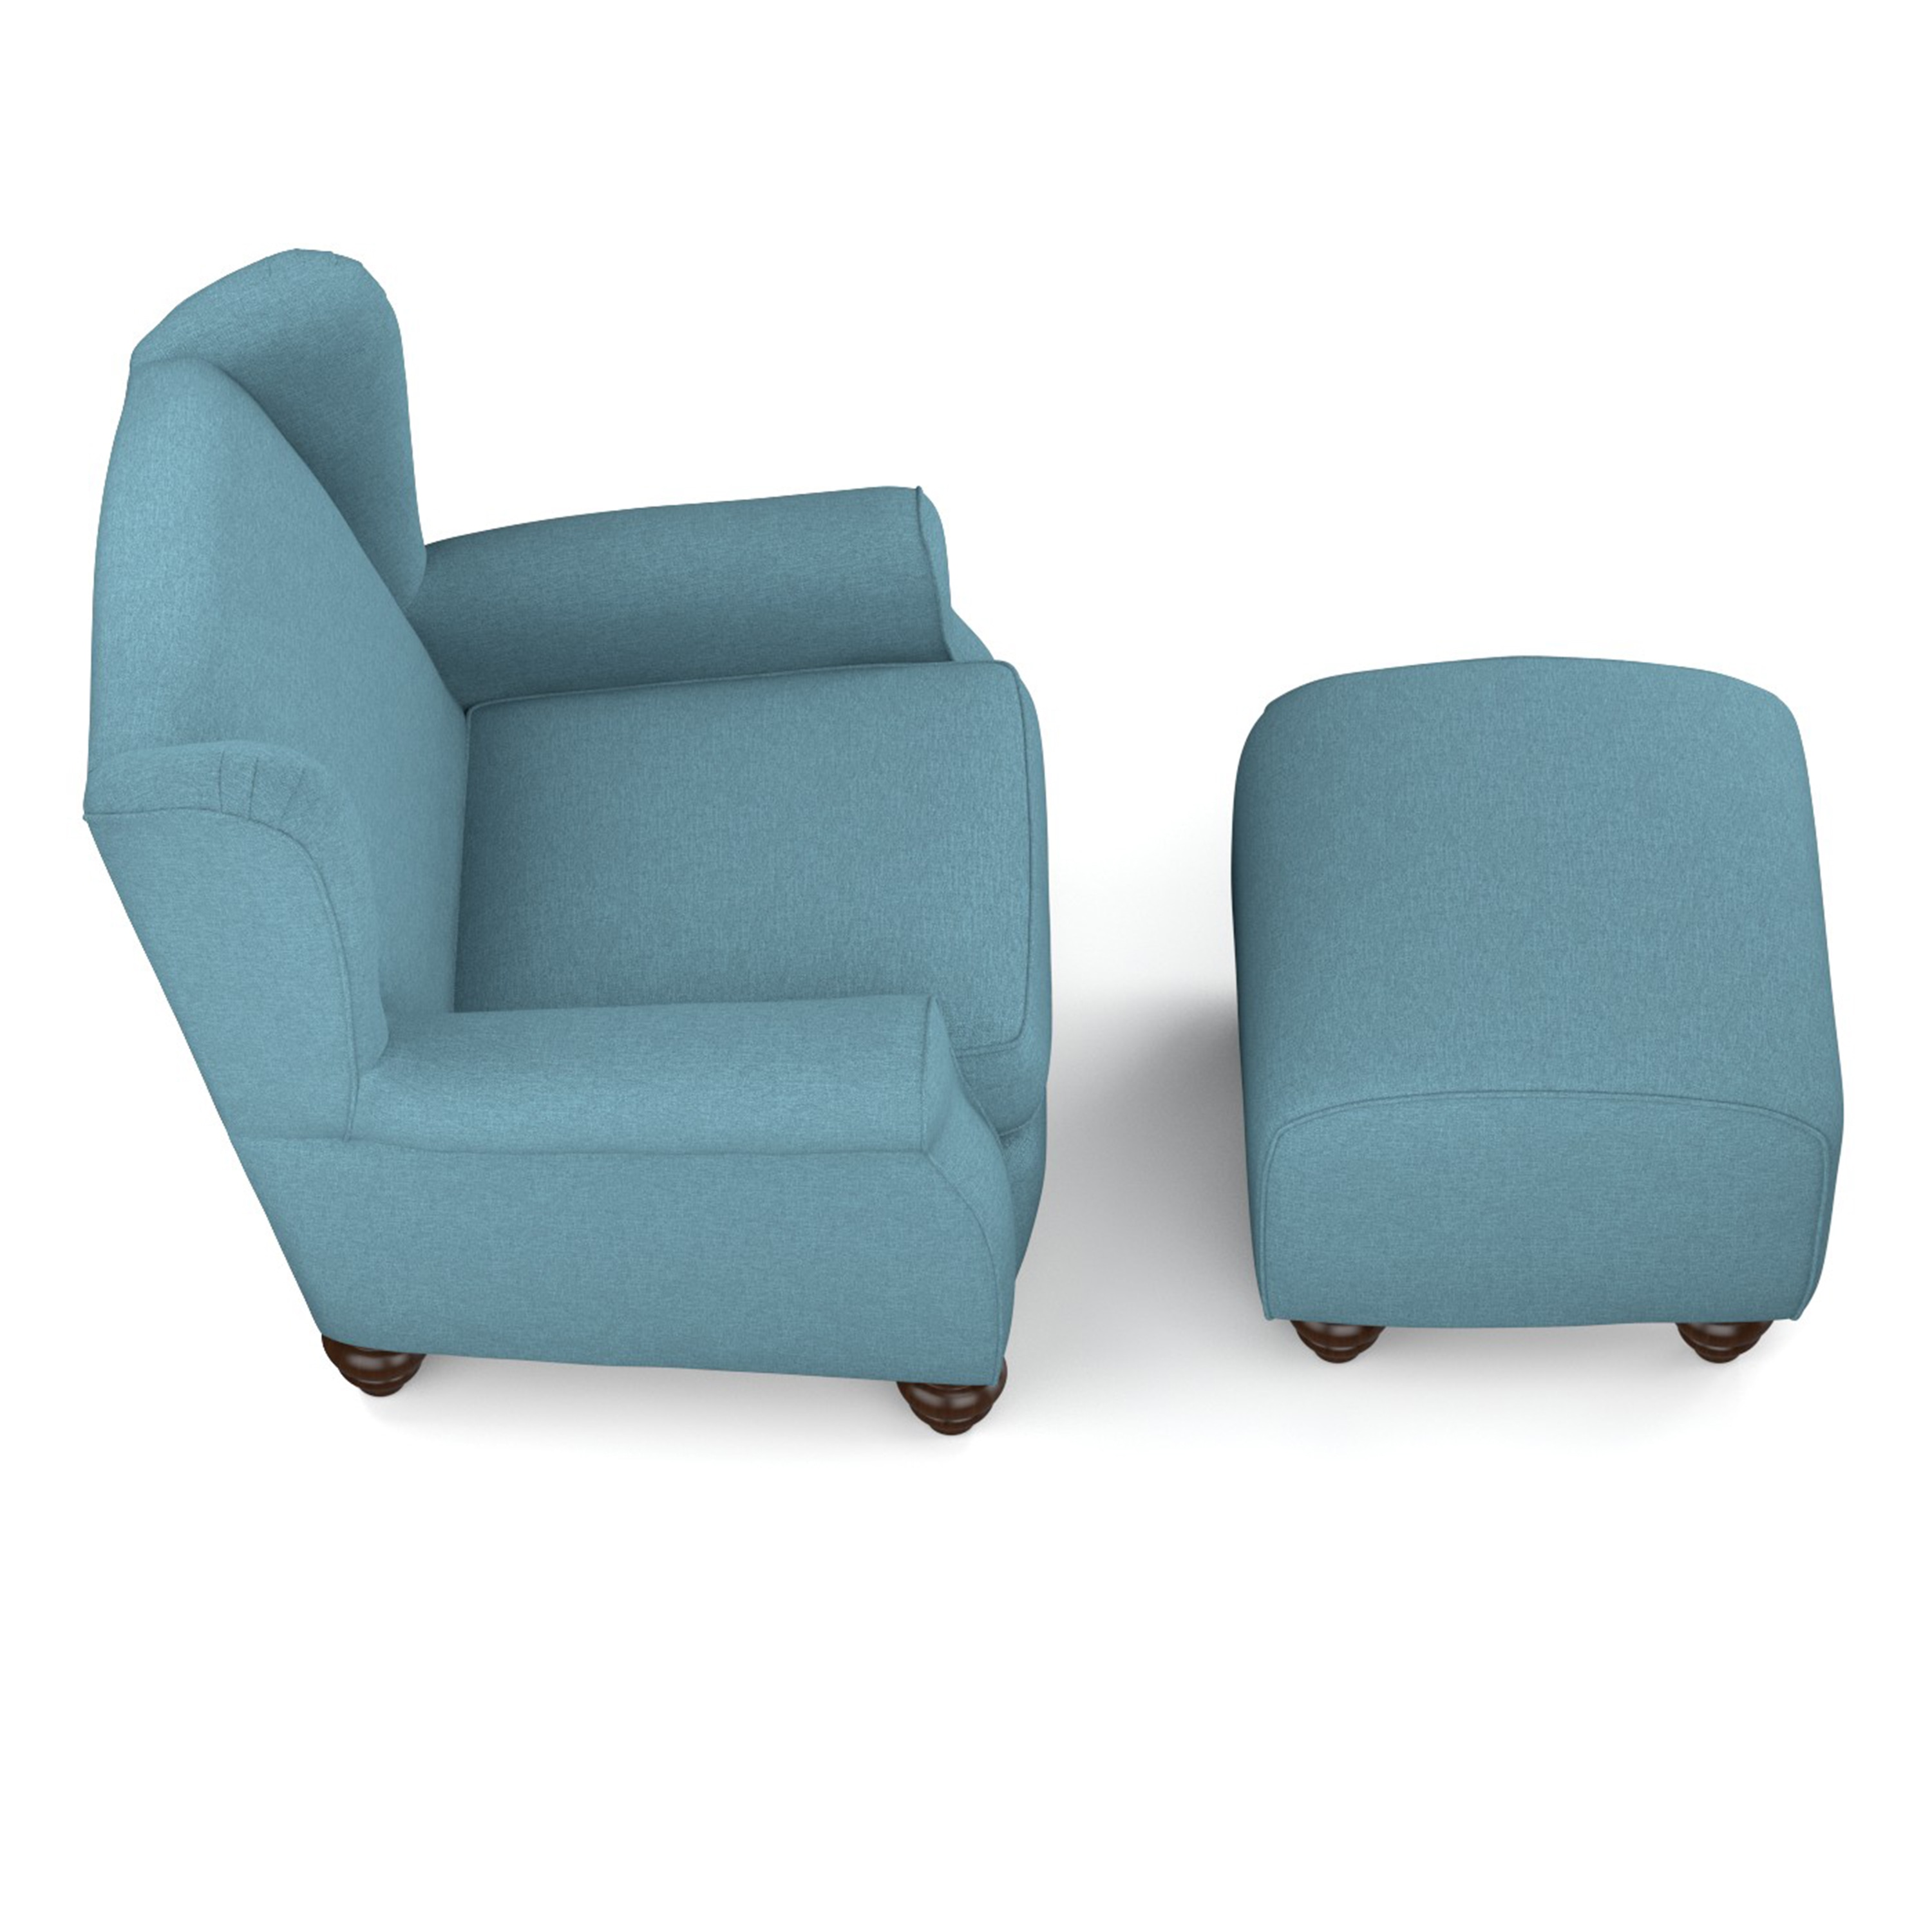 portfolio chair and ottoman wellness by design uk buy living room chairs online at overstock our best